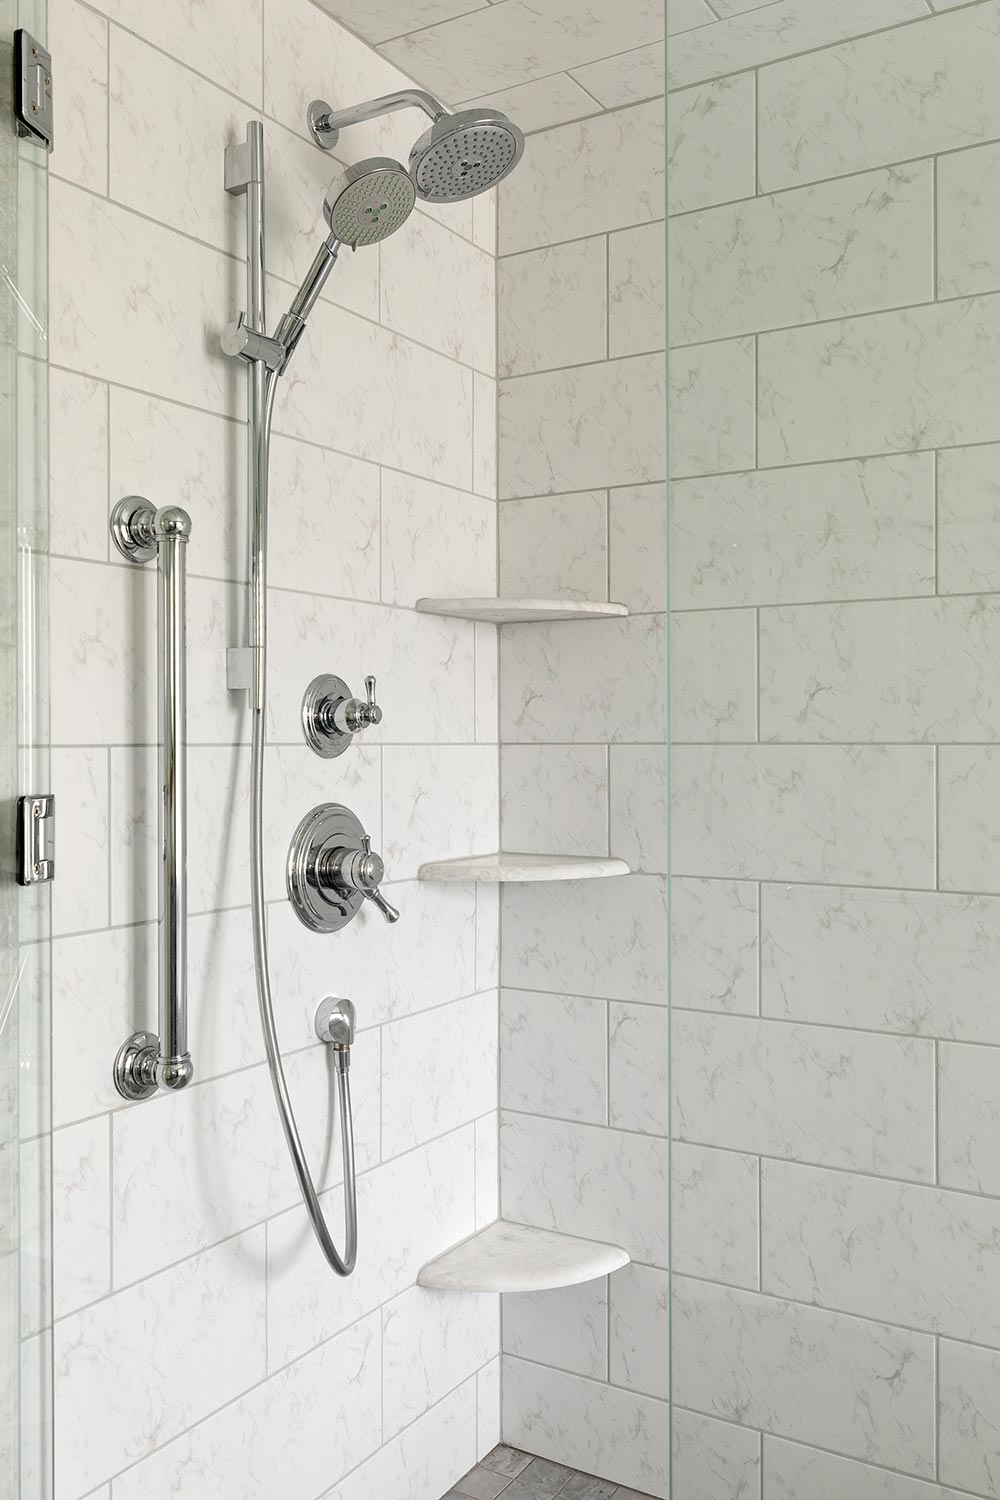 Wall mounted and hand held shower heads